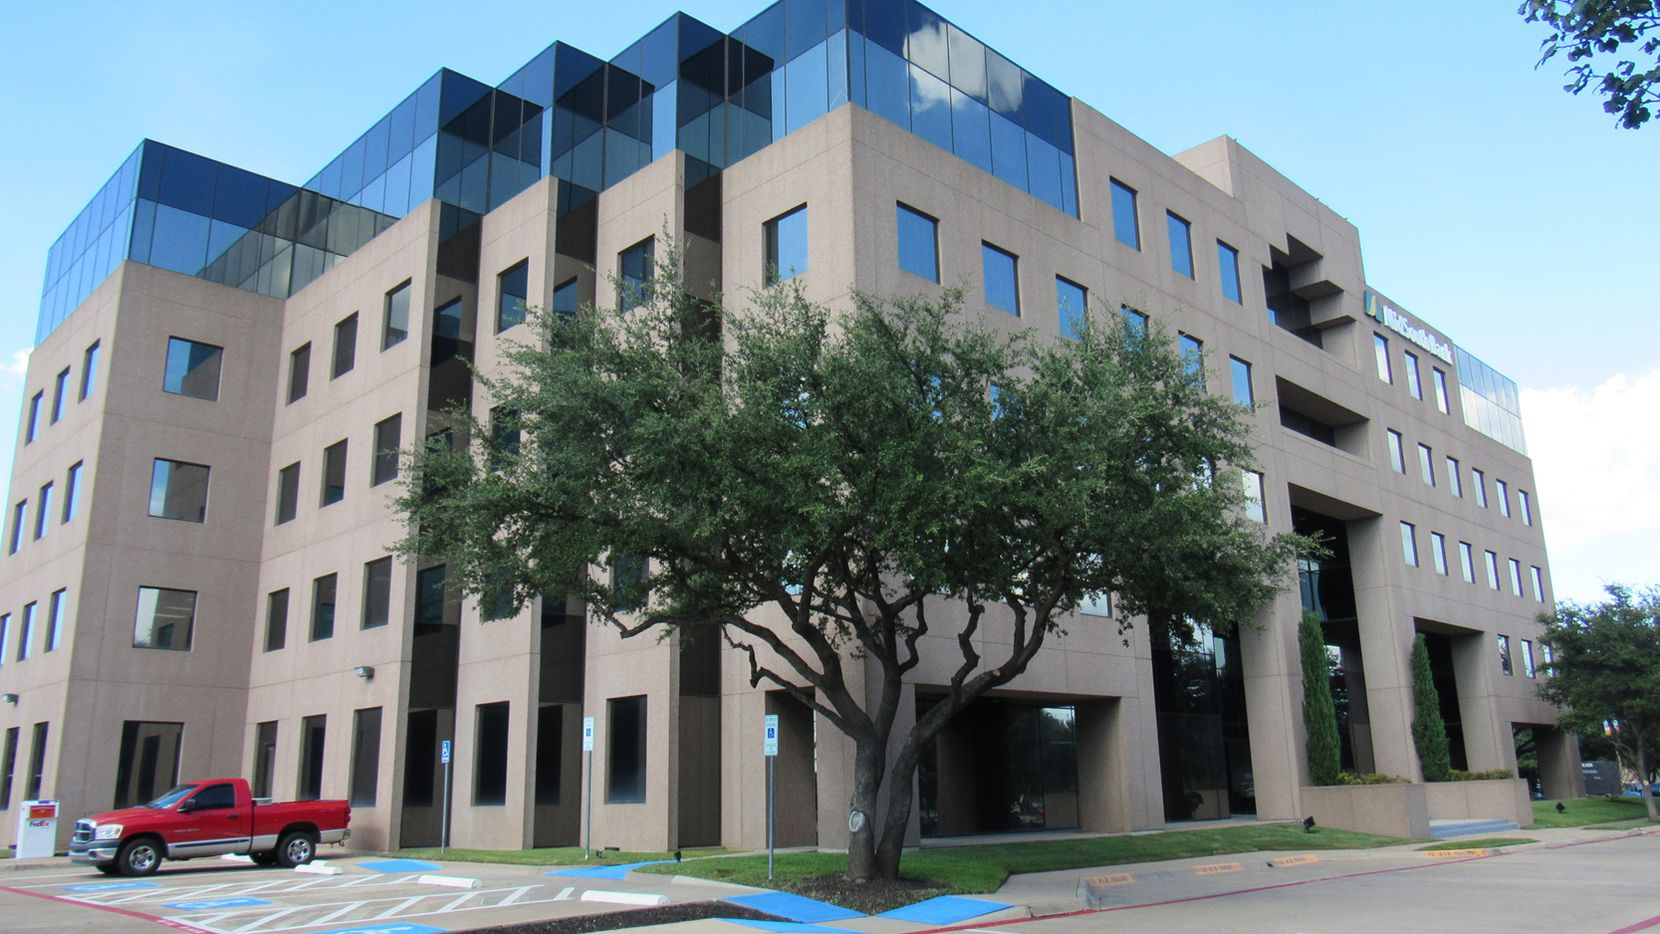 Keller Williams Realty-North Dallas has moved its headquarters to 18333 Preston Road.